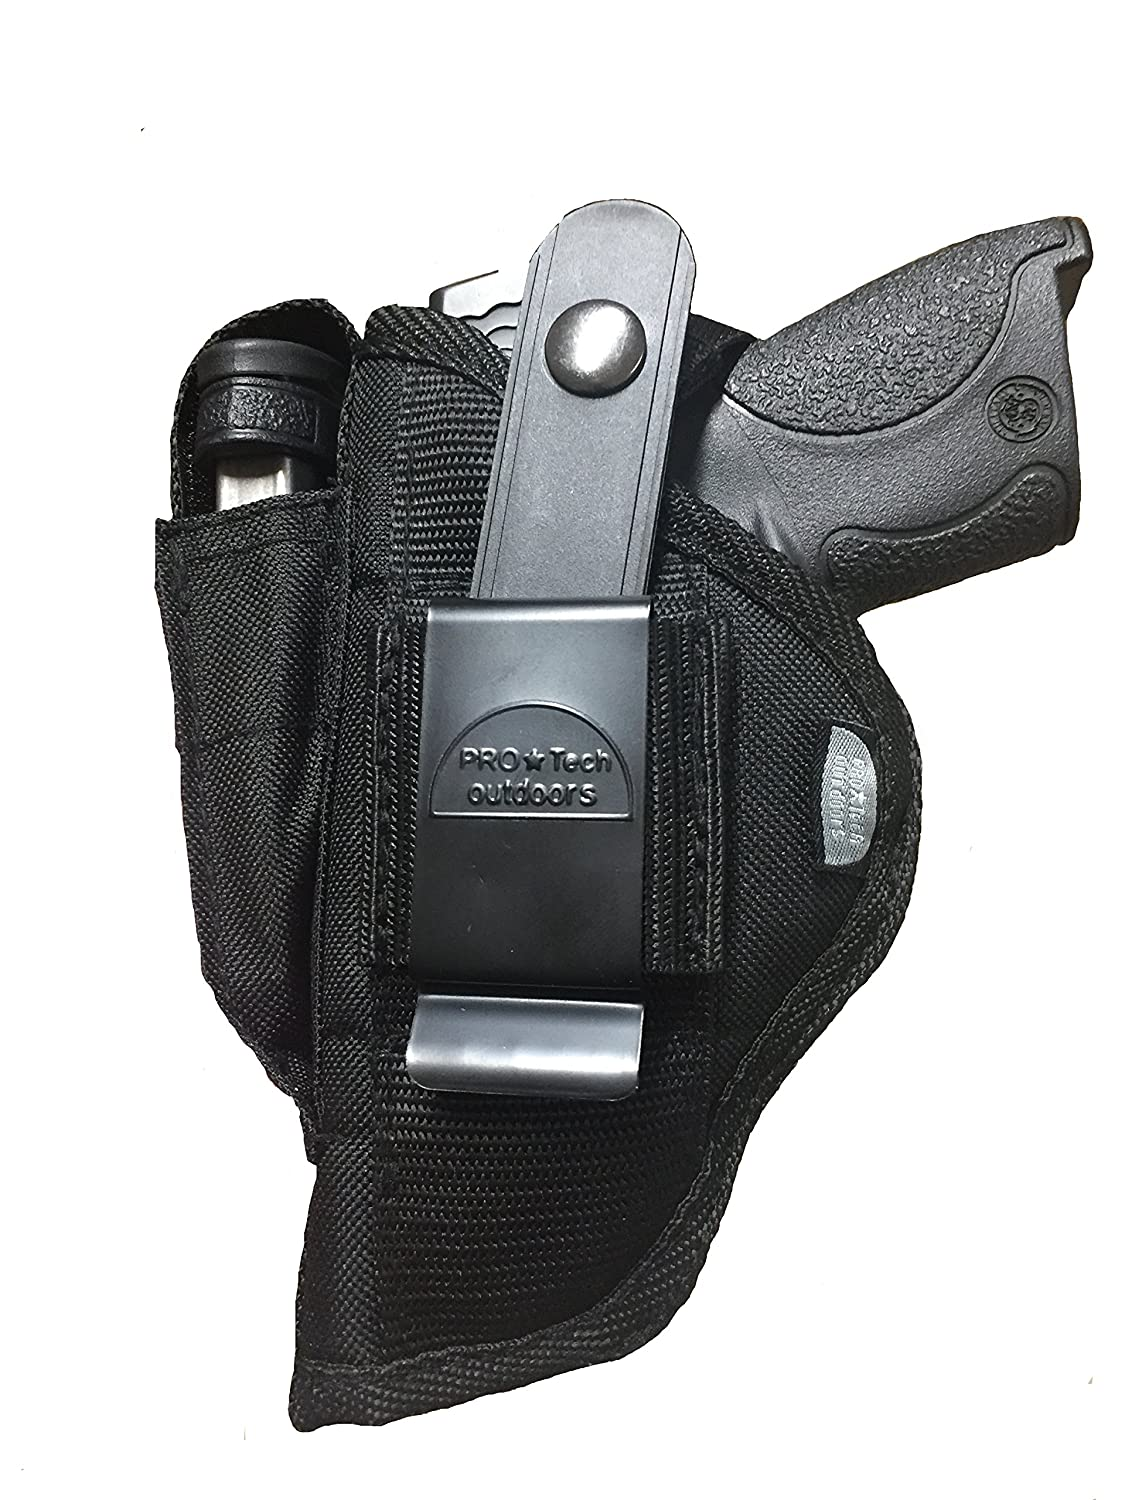 Pro-Tech Outdoors Nylon Holster Fits Kel-Tec PMR 30 with 4 3